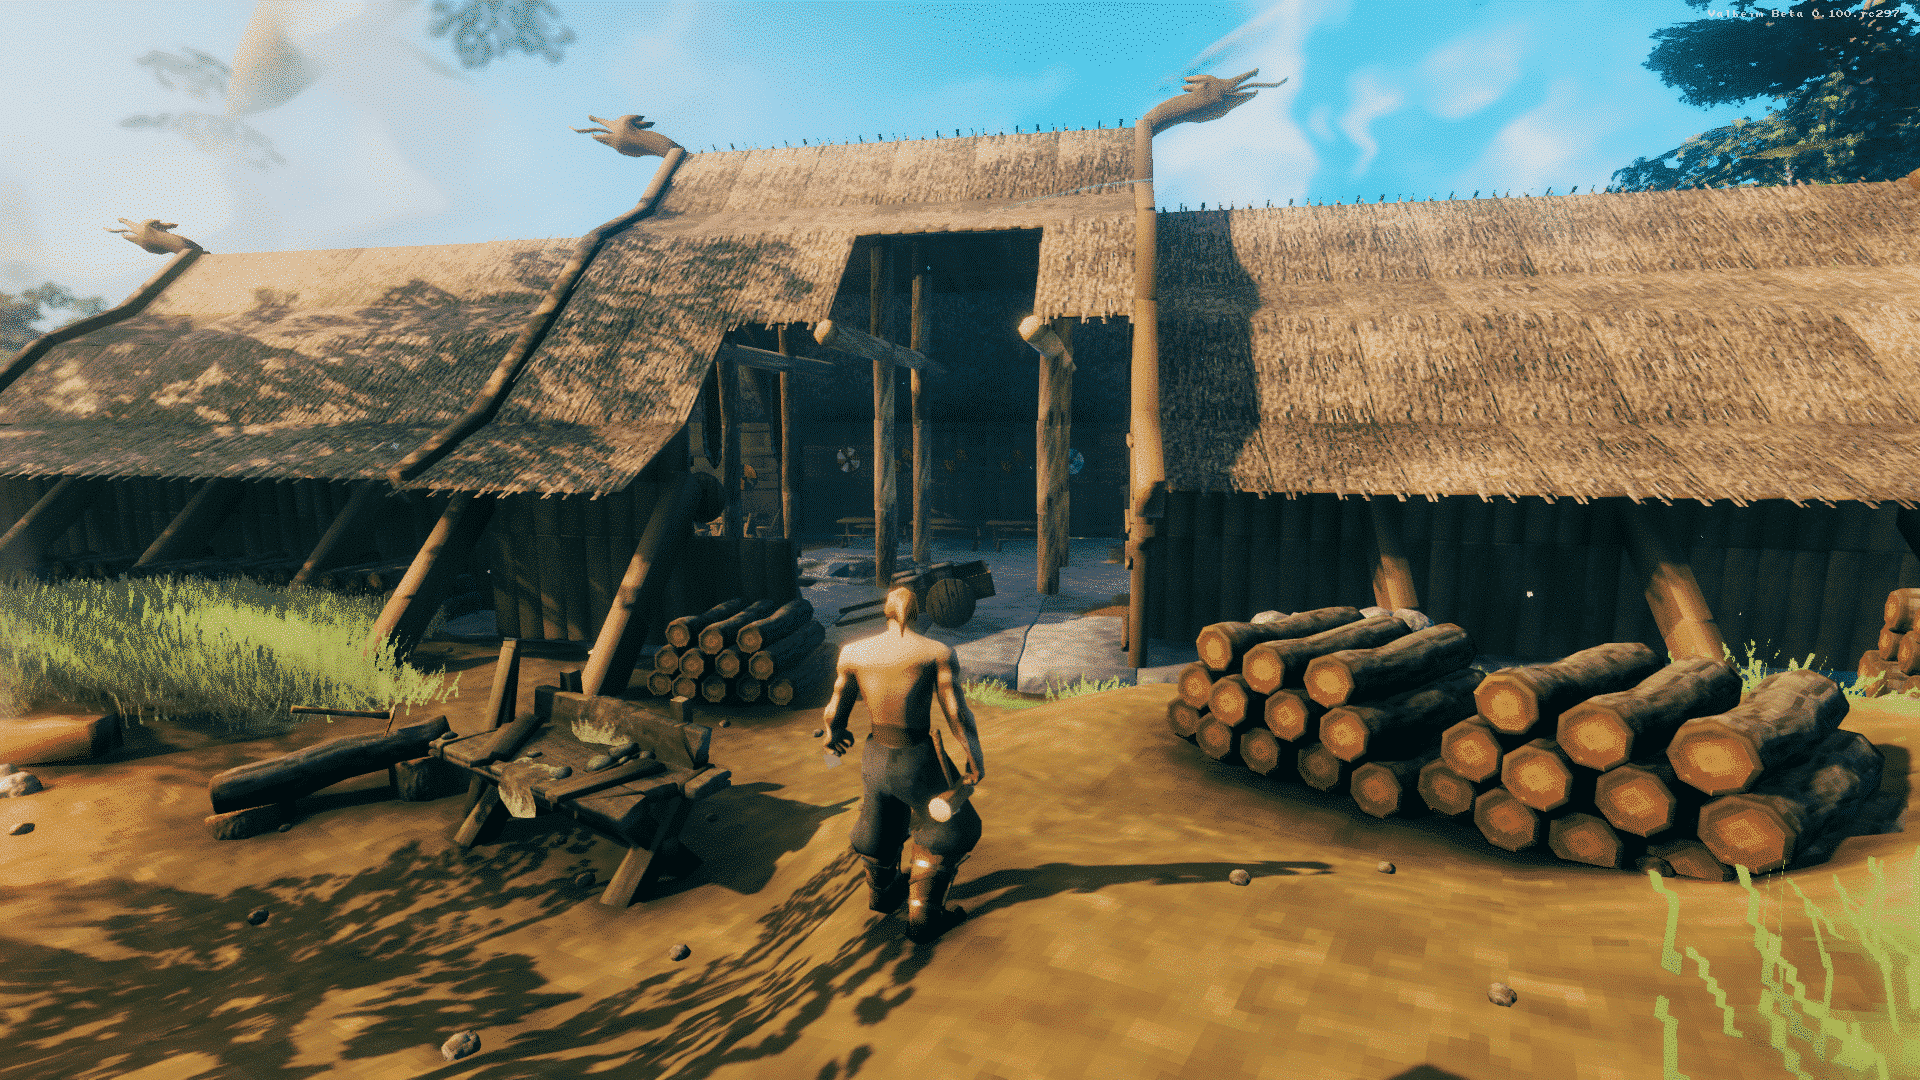 Valheim Screenshot - Logs